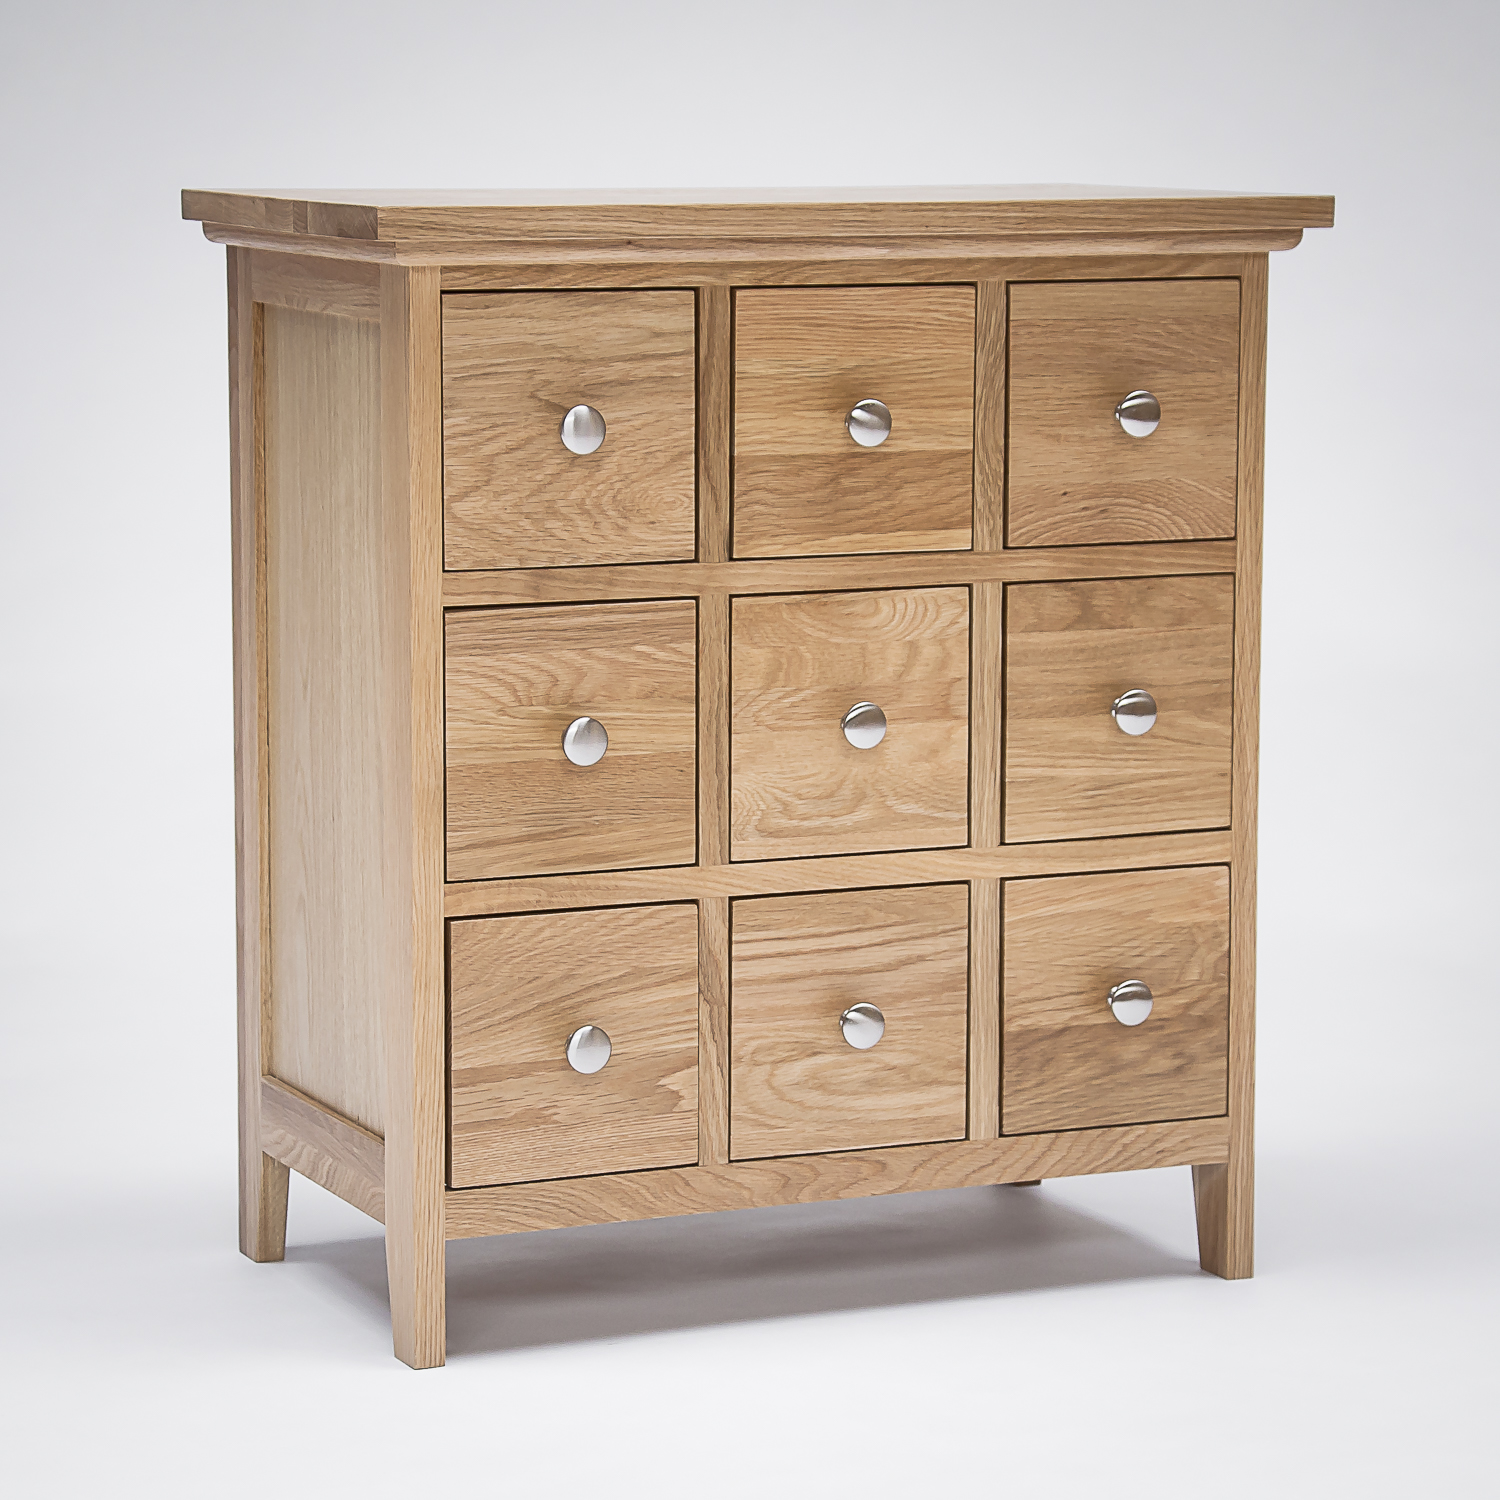 Sherwood Oak DVD/CD Storage Cabinet - 9 Drawers (Sherwood Oak DVD/CD Storage Cabinet - 9 Drawers - N